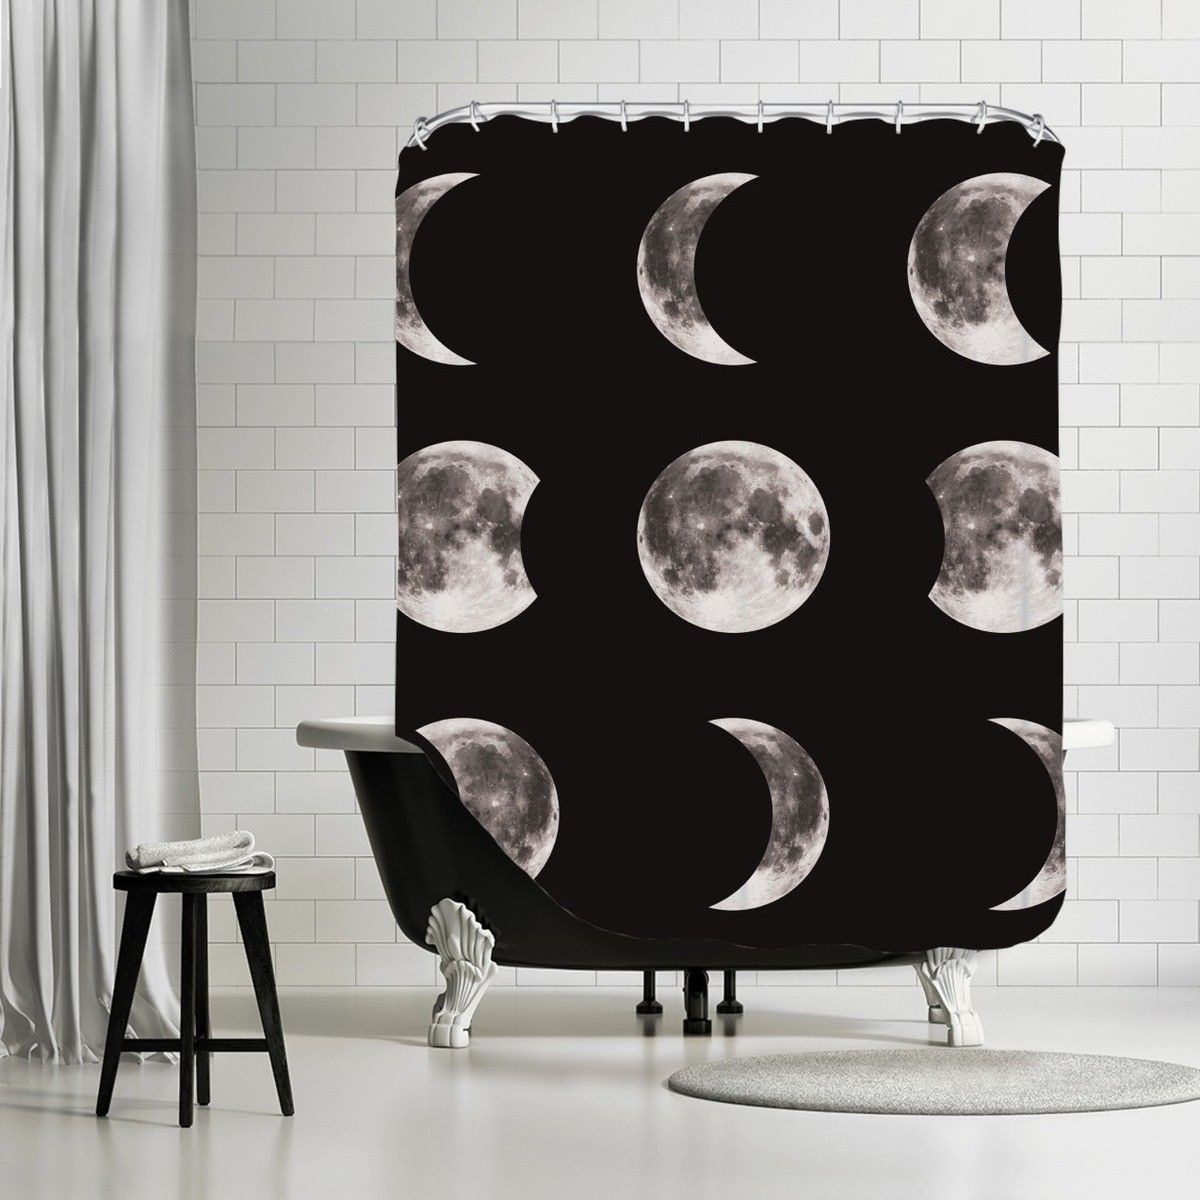 The Glass Mountain Moon Phases By The Glass Mountain Shower Curtain Colorful Curtains Artwork Design Shower Curtain Rods